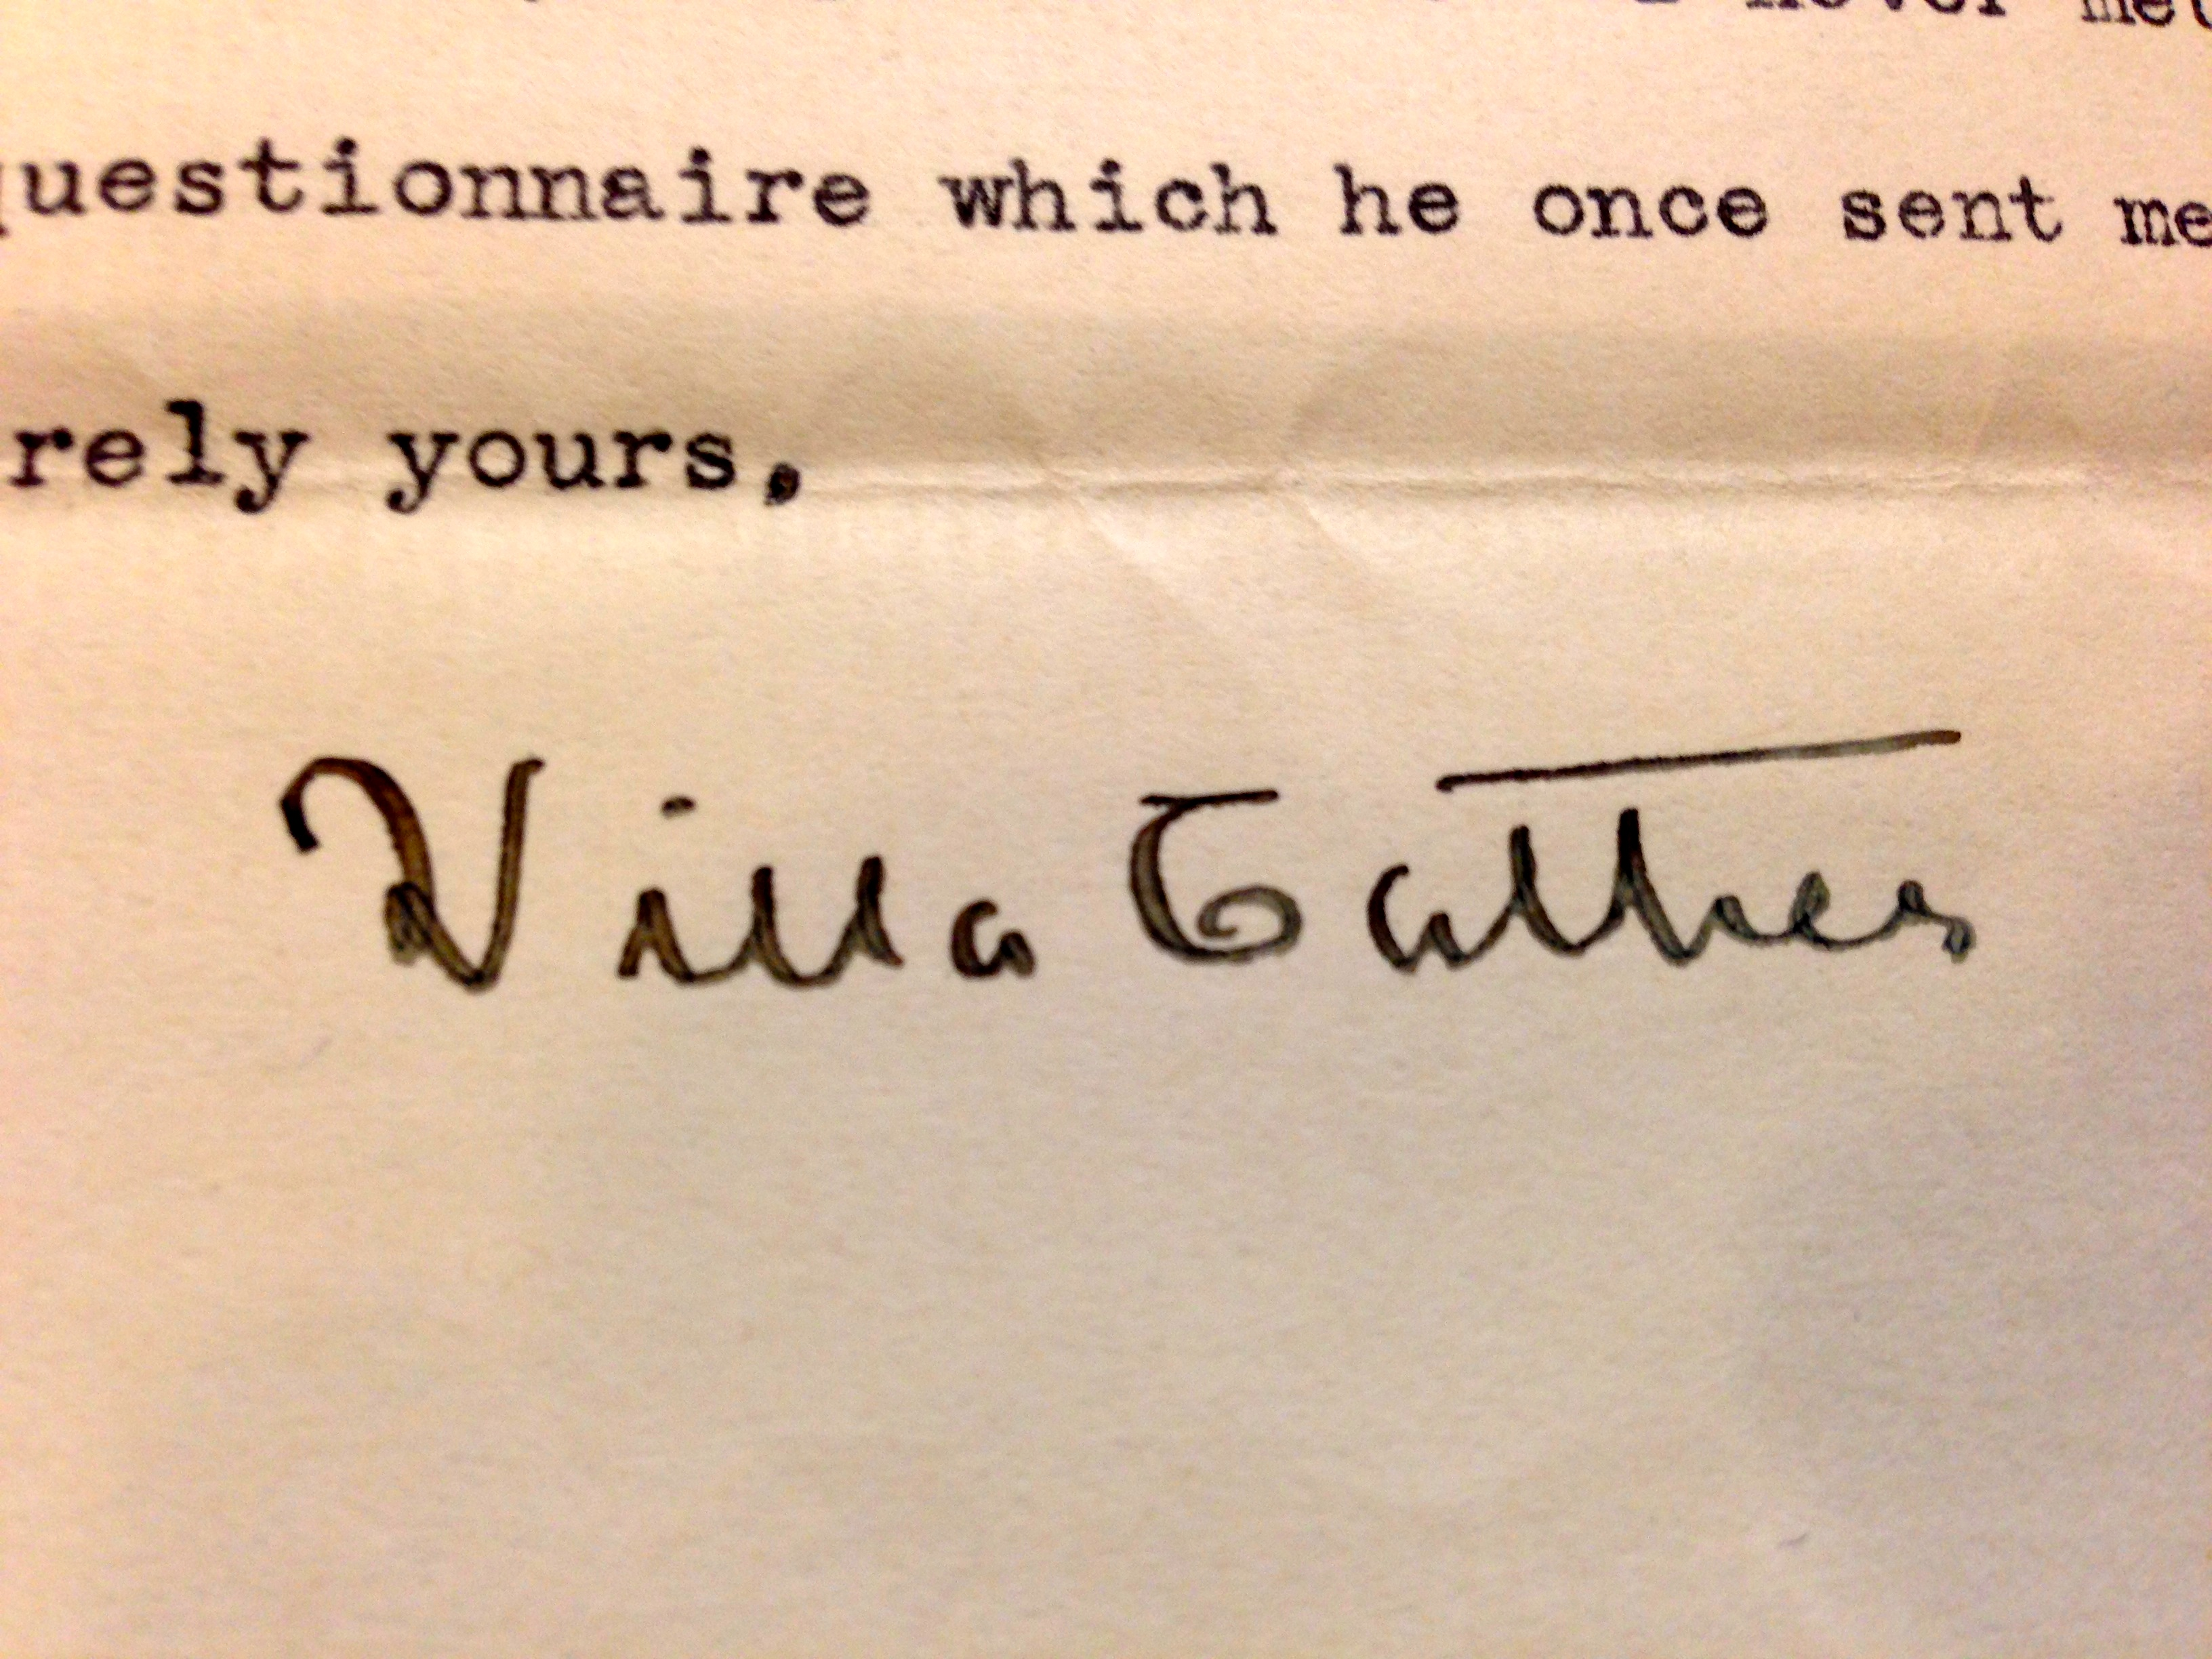 Willa Cather's signature from her letter to (Emily Caldwell)